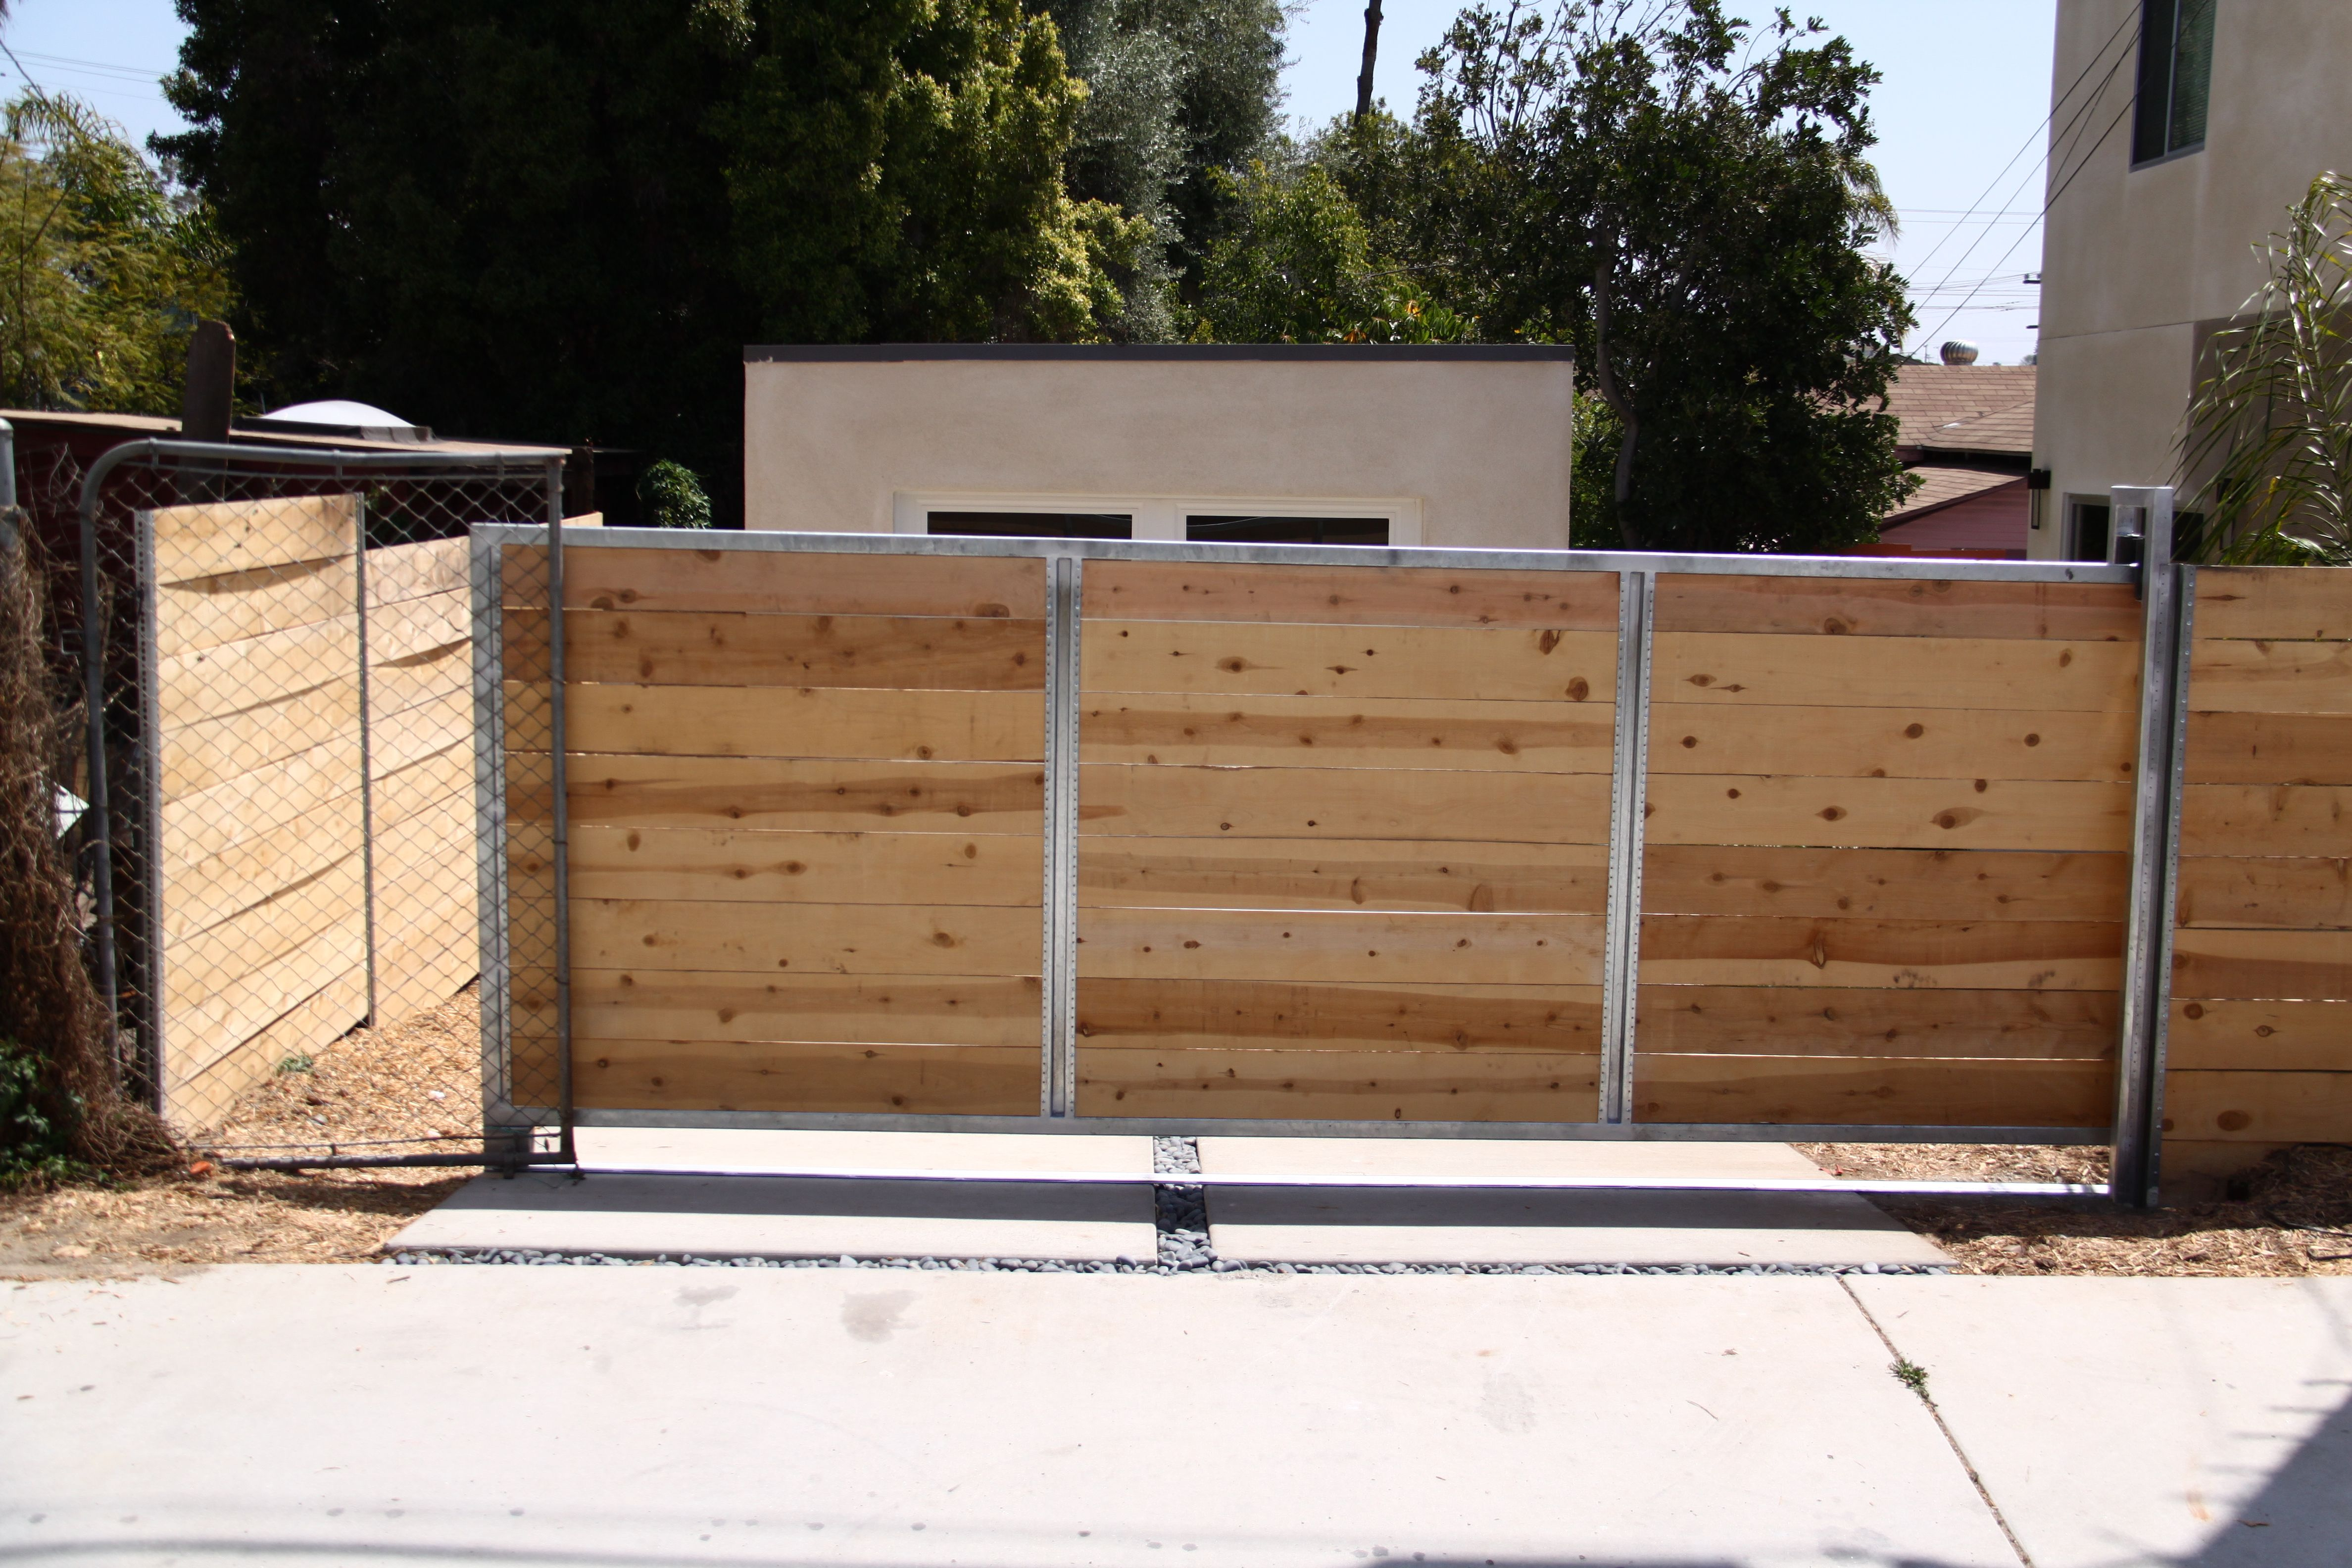 Stainless steel and wood sliding 4752 3168 for Stainless steel driveway gates designs